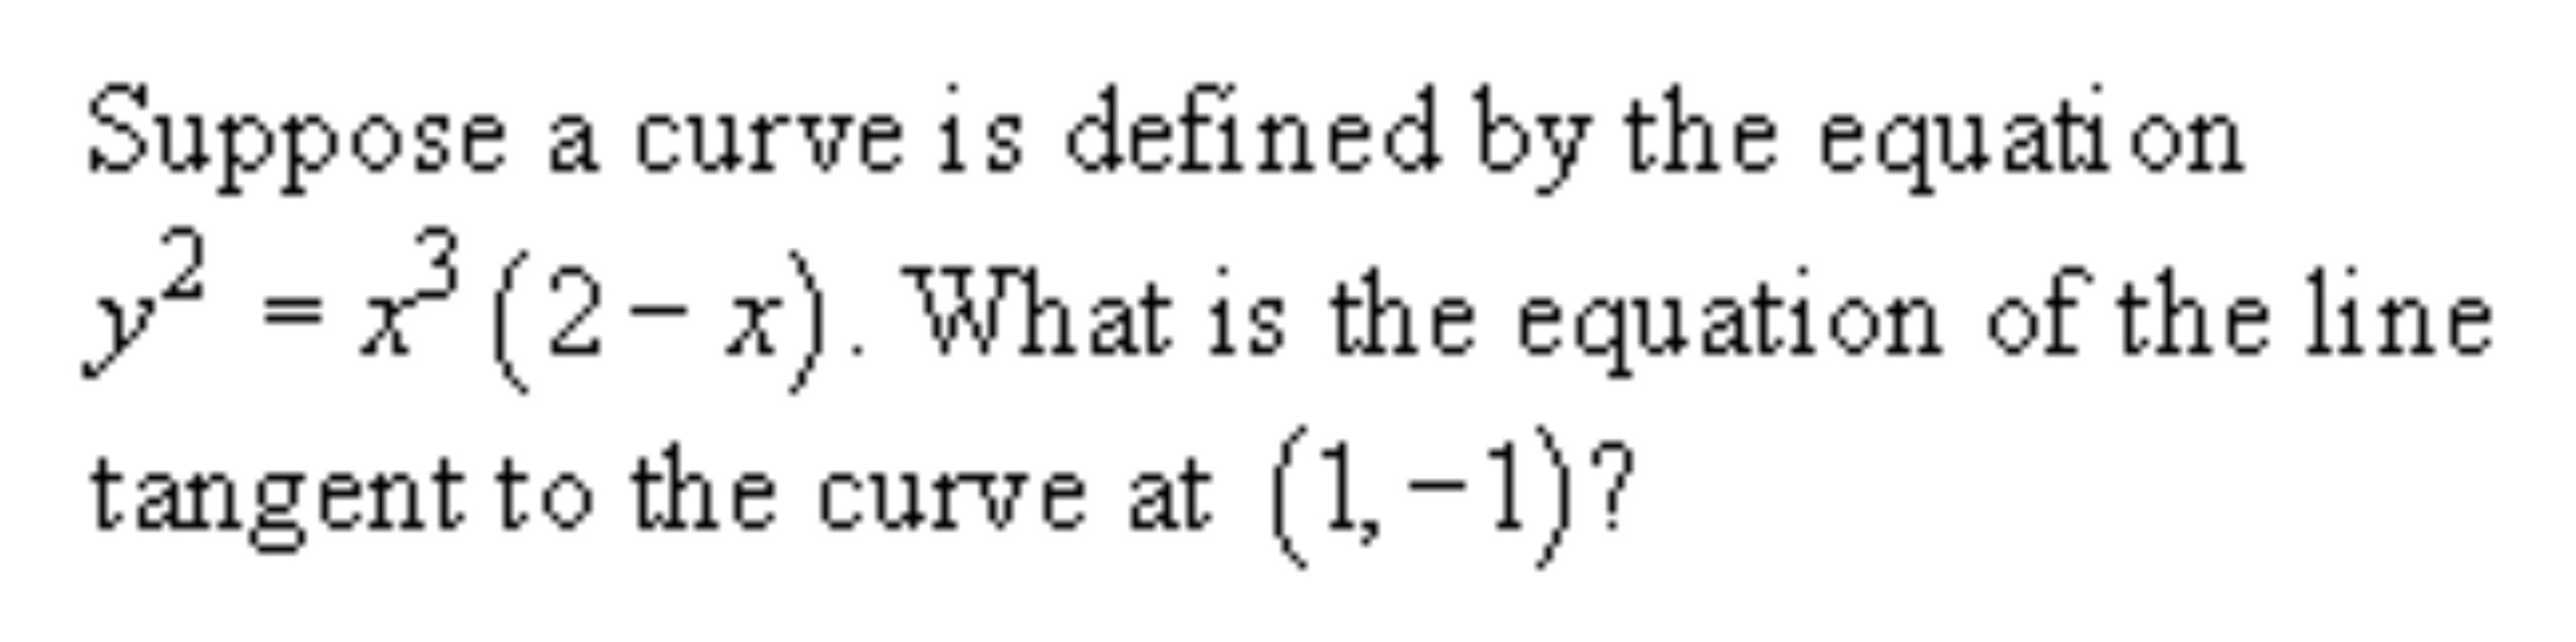 Suppose a curve is defined by the equati on y2 = x*(2- x). What is the equation of the line tangent to the curve at (1,-1)?